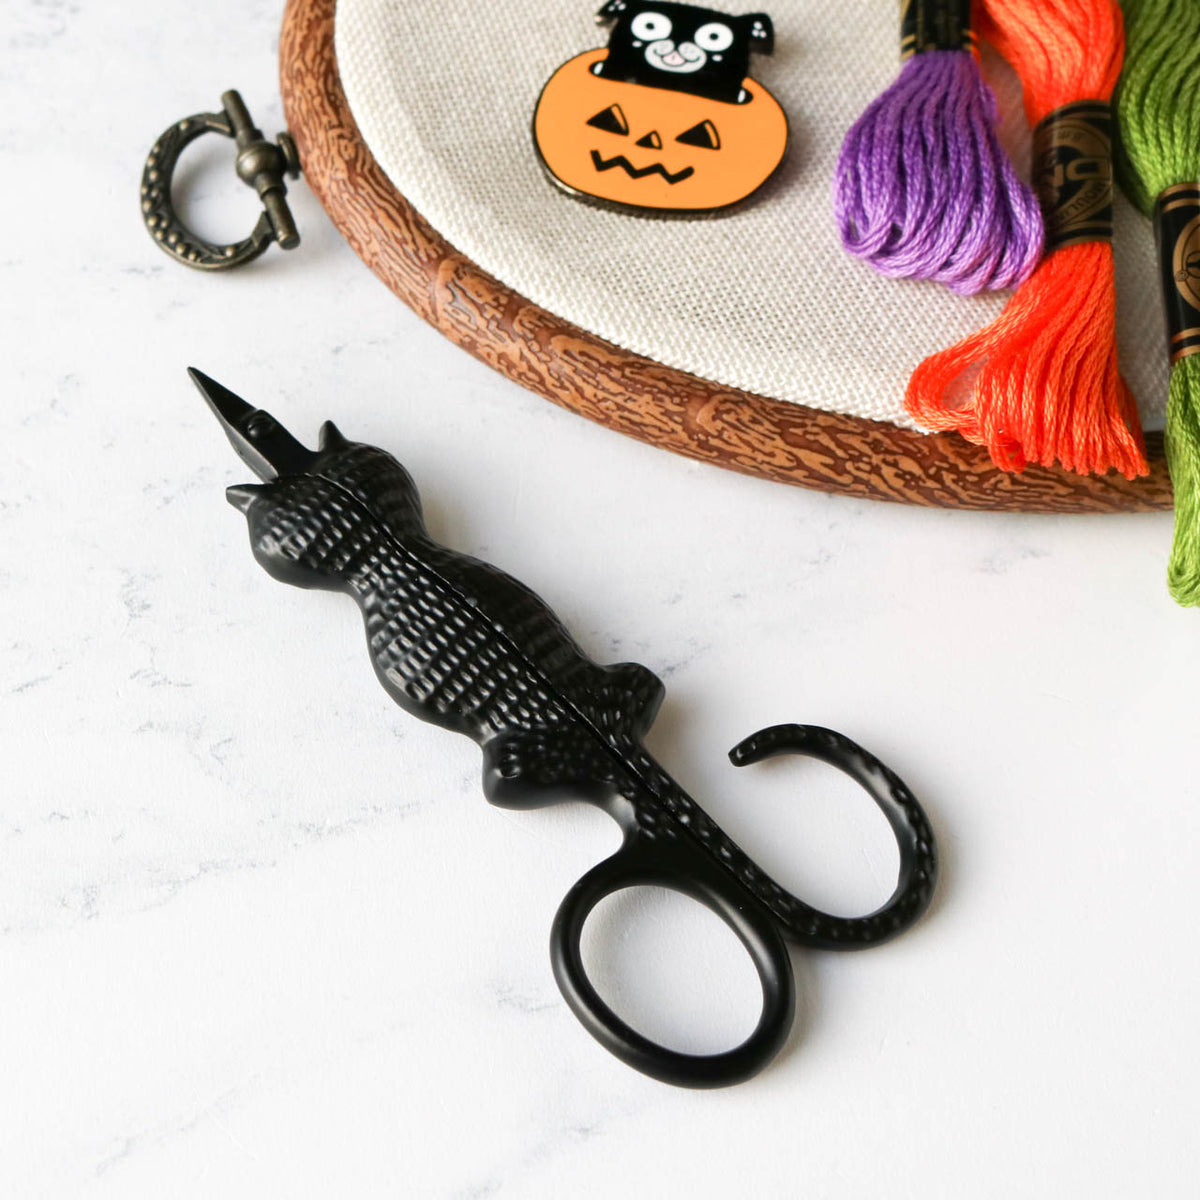 Black Cat Embroidery Scissors